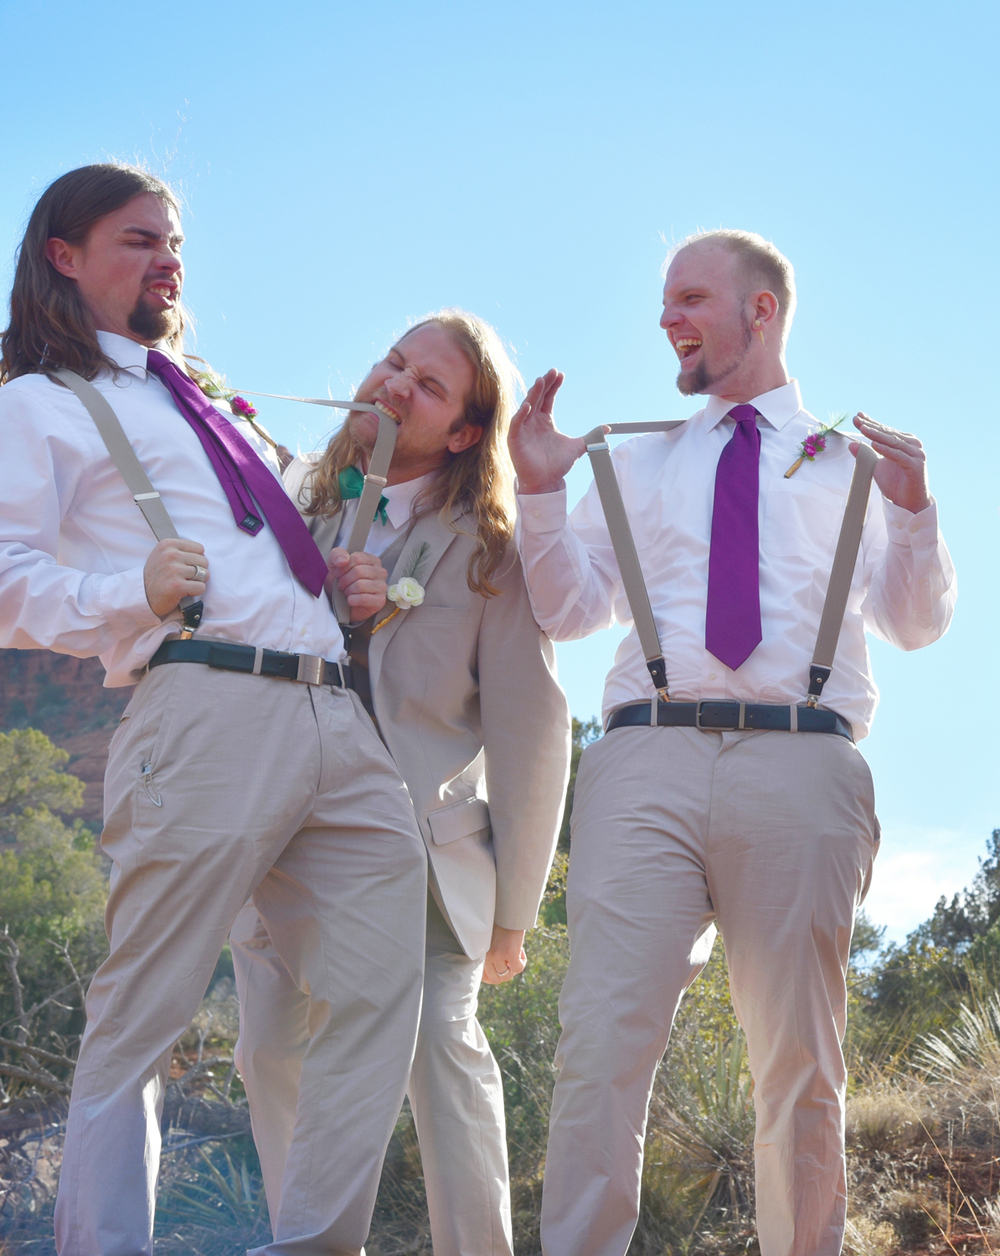 Weddings-Sedona-Wedding-Bell-Rock-Arizona-Suspenders-Groomsmen_Carly-Carpenter.jpg